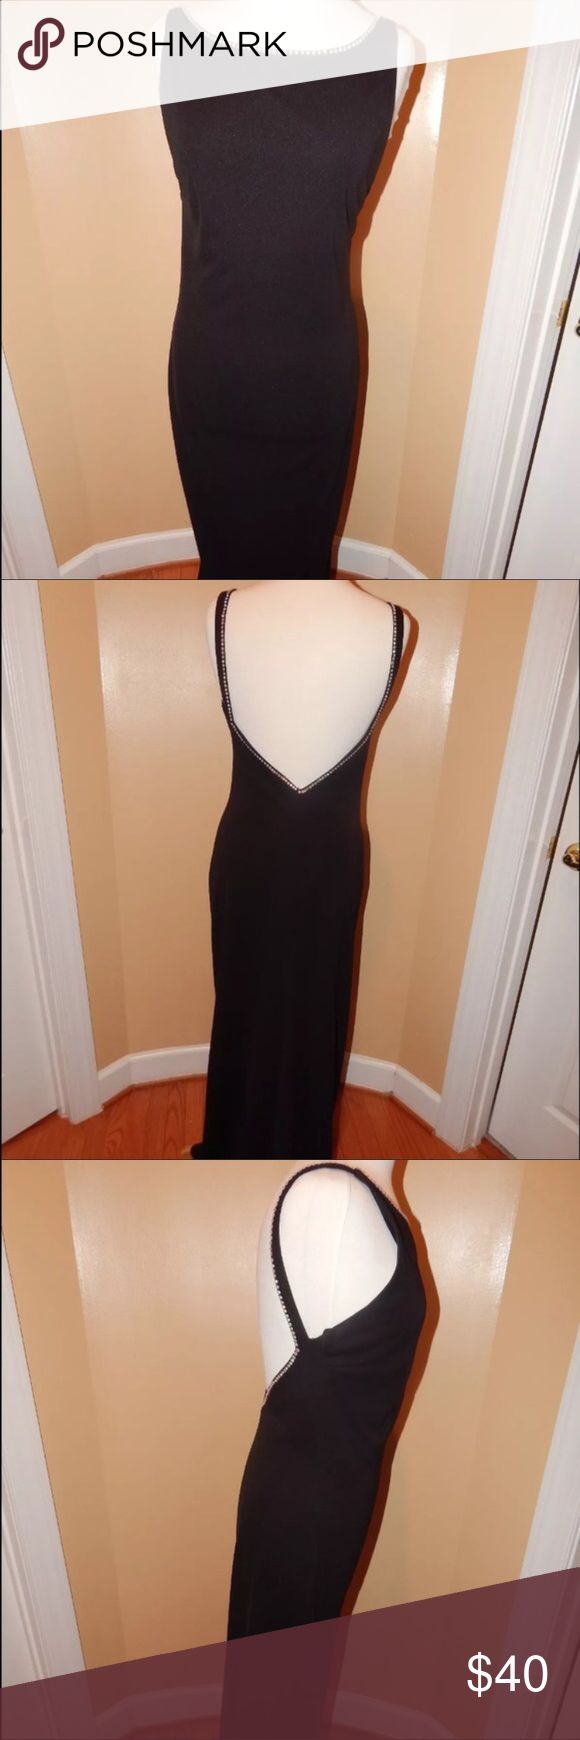 Final Sale!!! Gorgeous Black Gown❣️ Re-Poshing 😔. This dress was exactly what I was looking for, for a company party.  Unfortunately it's a little to snug in the bust area.  I hope its able to find a new home where it can be shown off and make you the star✨of the night! Ariana Grande Dresses Backless